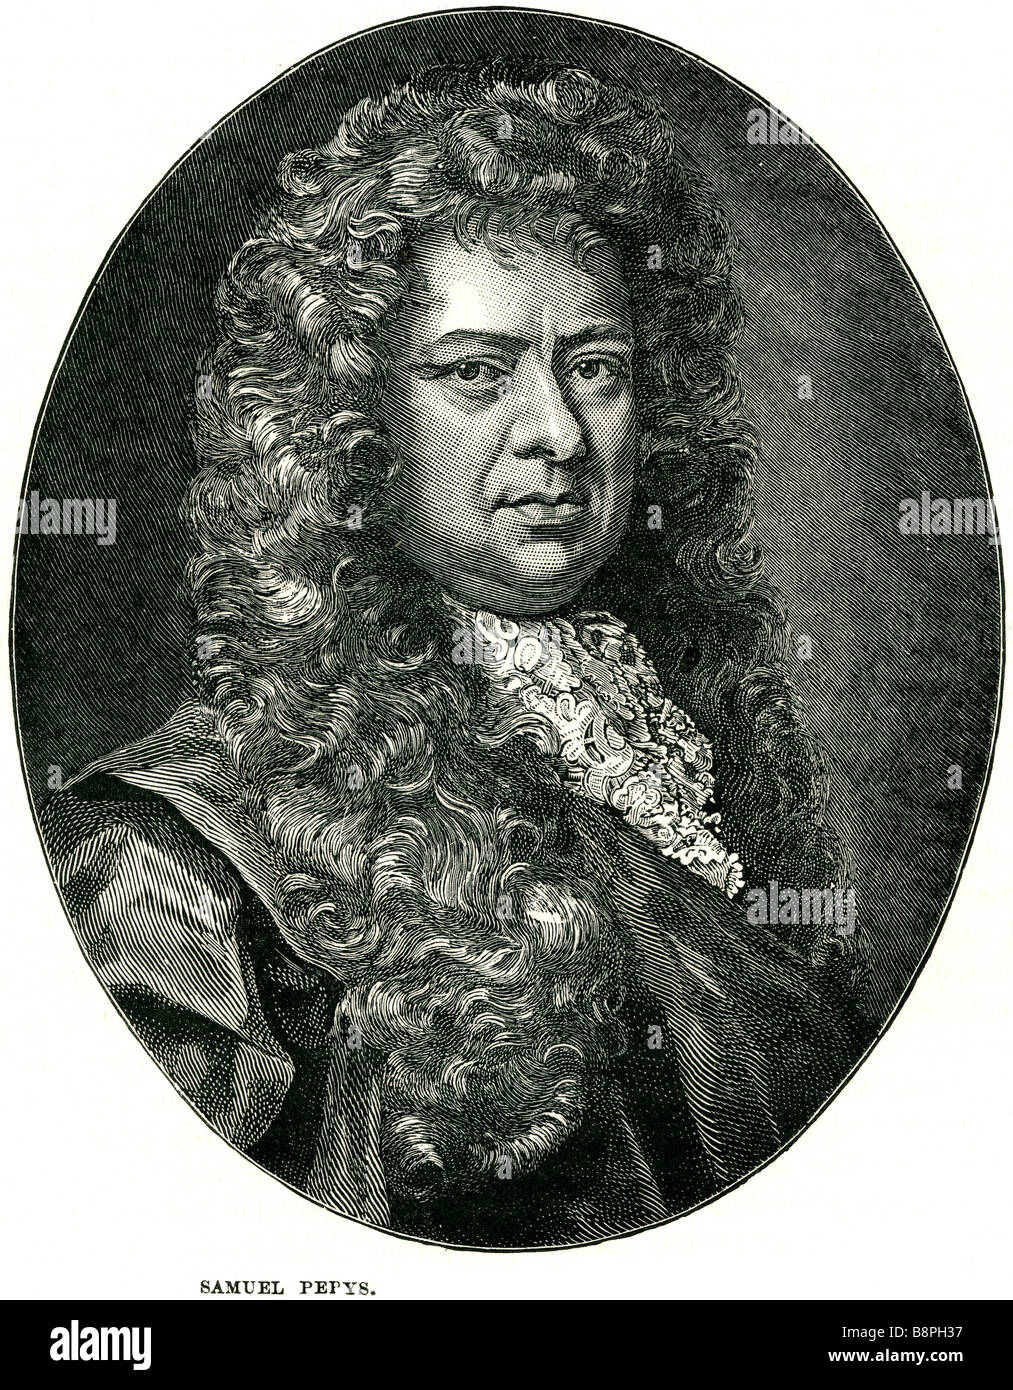 Samuel Pepys, FRS (23 February 1633 – 26 May 1703) was an English naval administrator and Member of Parliament, - Stock Image